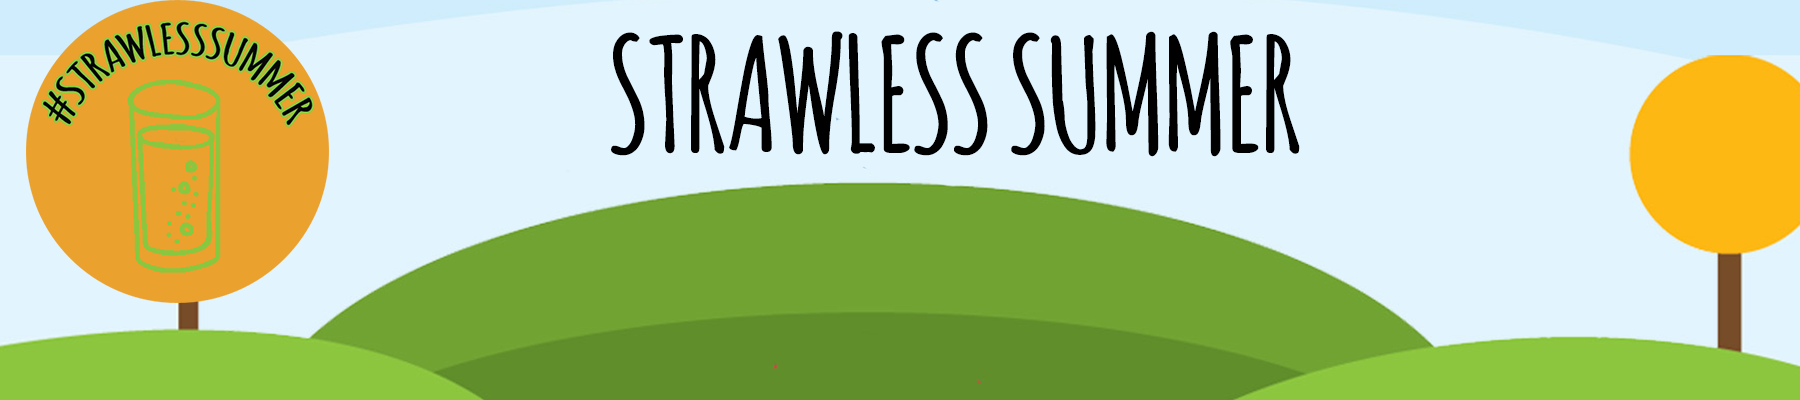 Frequently Asked Questions about Strawless Summer